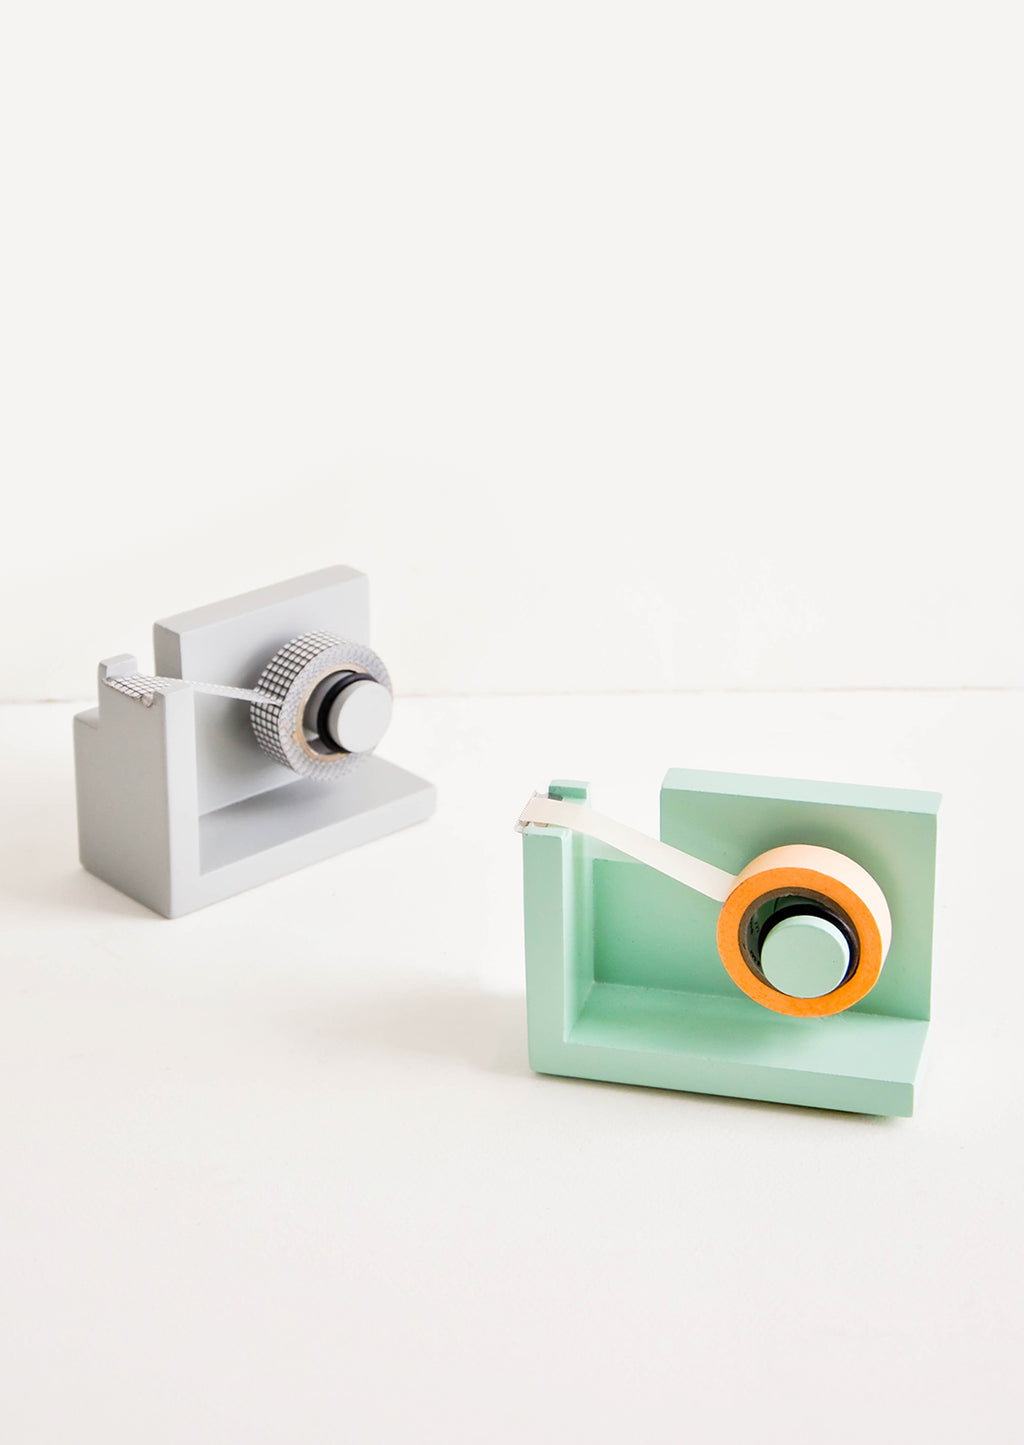 1: Two painted wooden tape dispensers, one gray, one green.